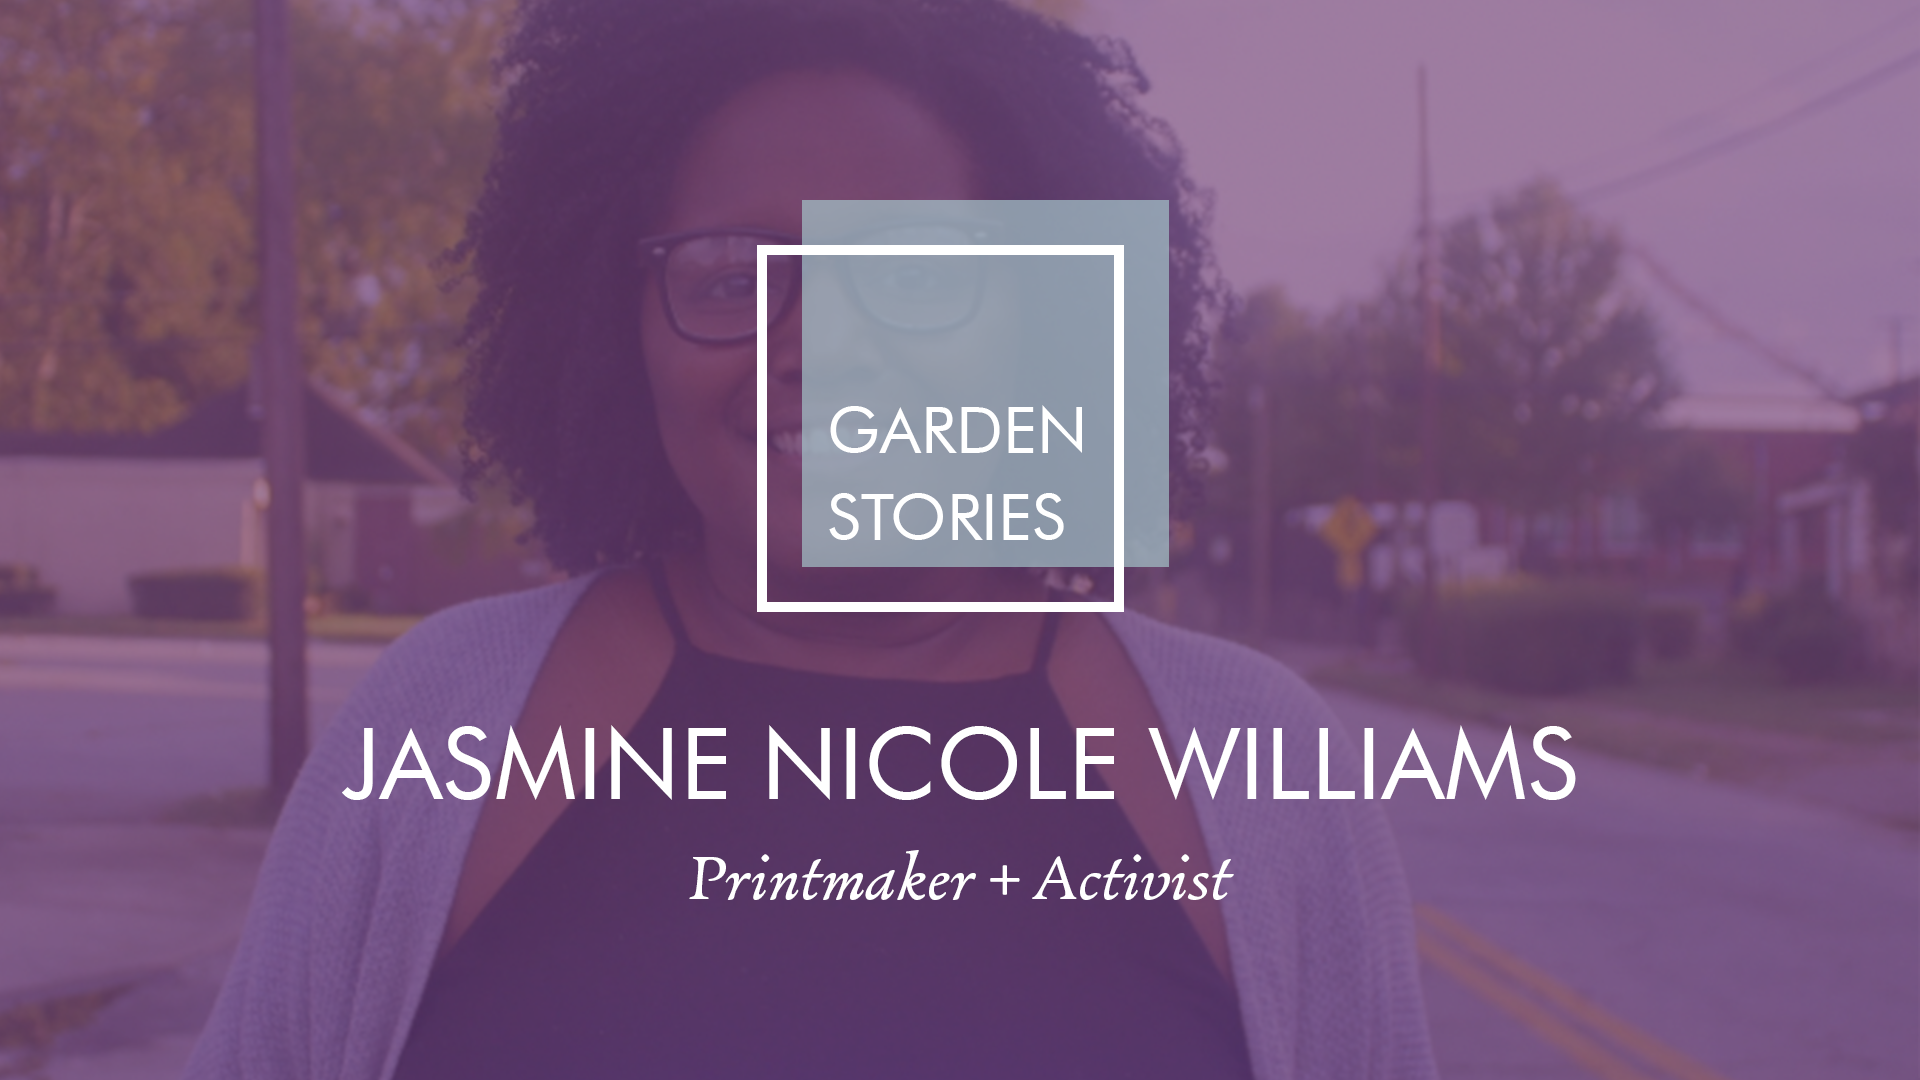 Garden Stories: Jasmine Nicole Williams